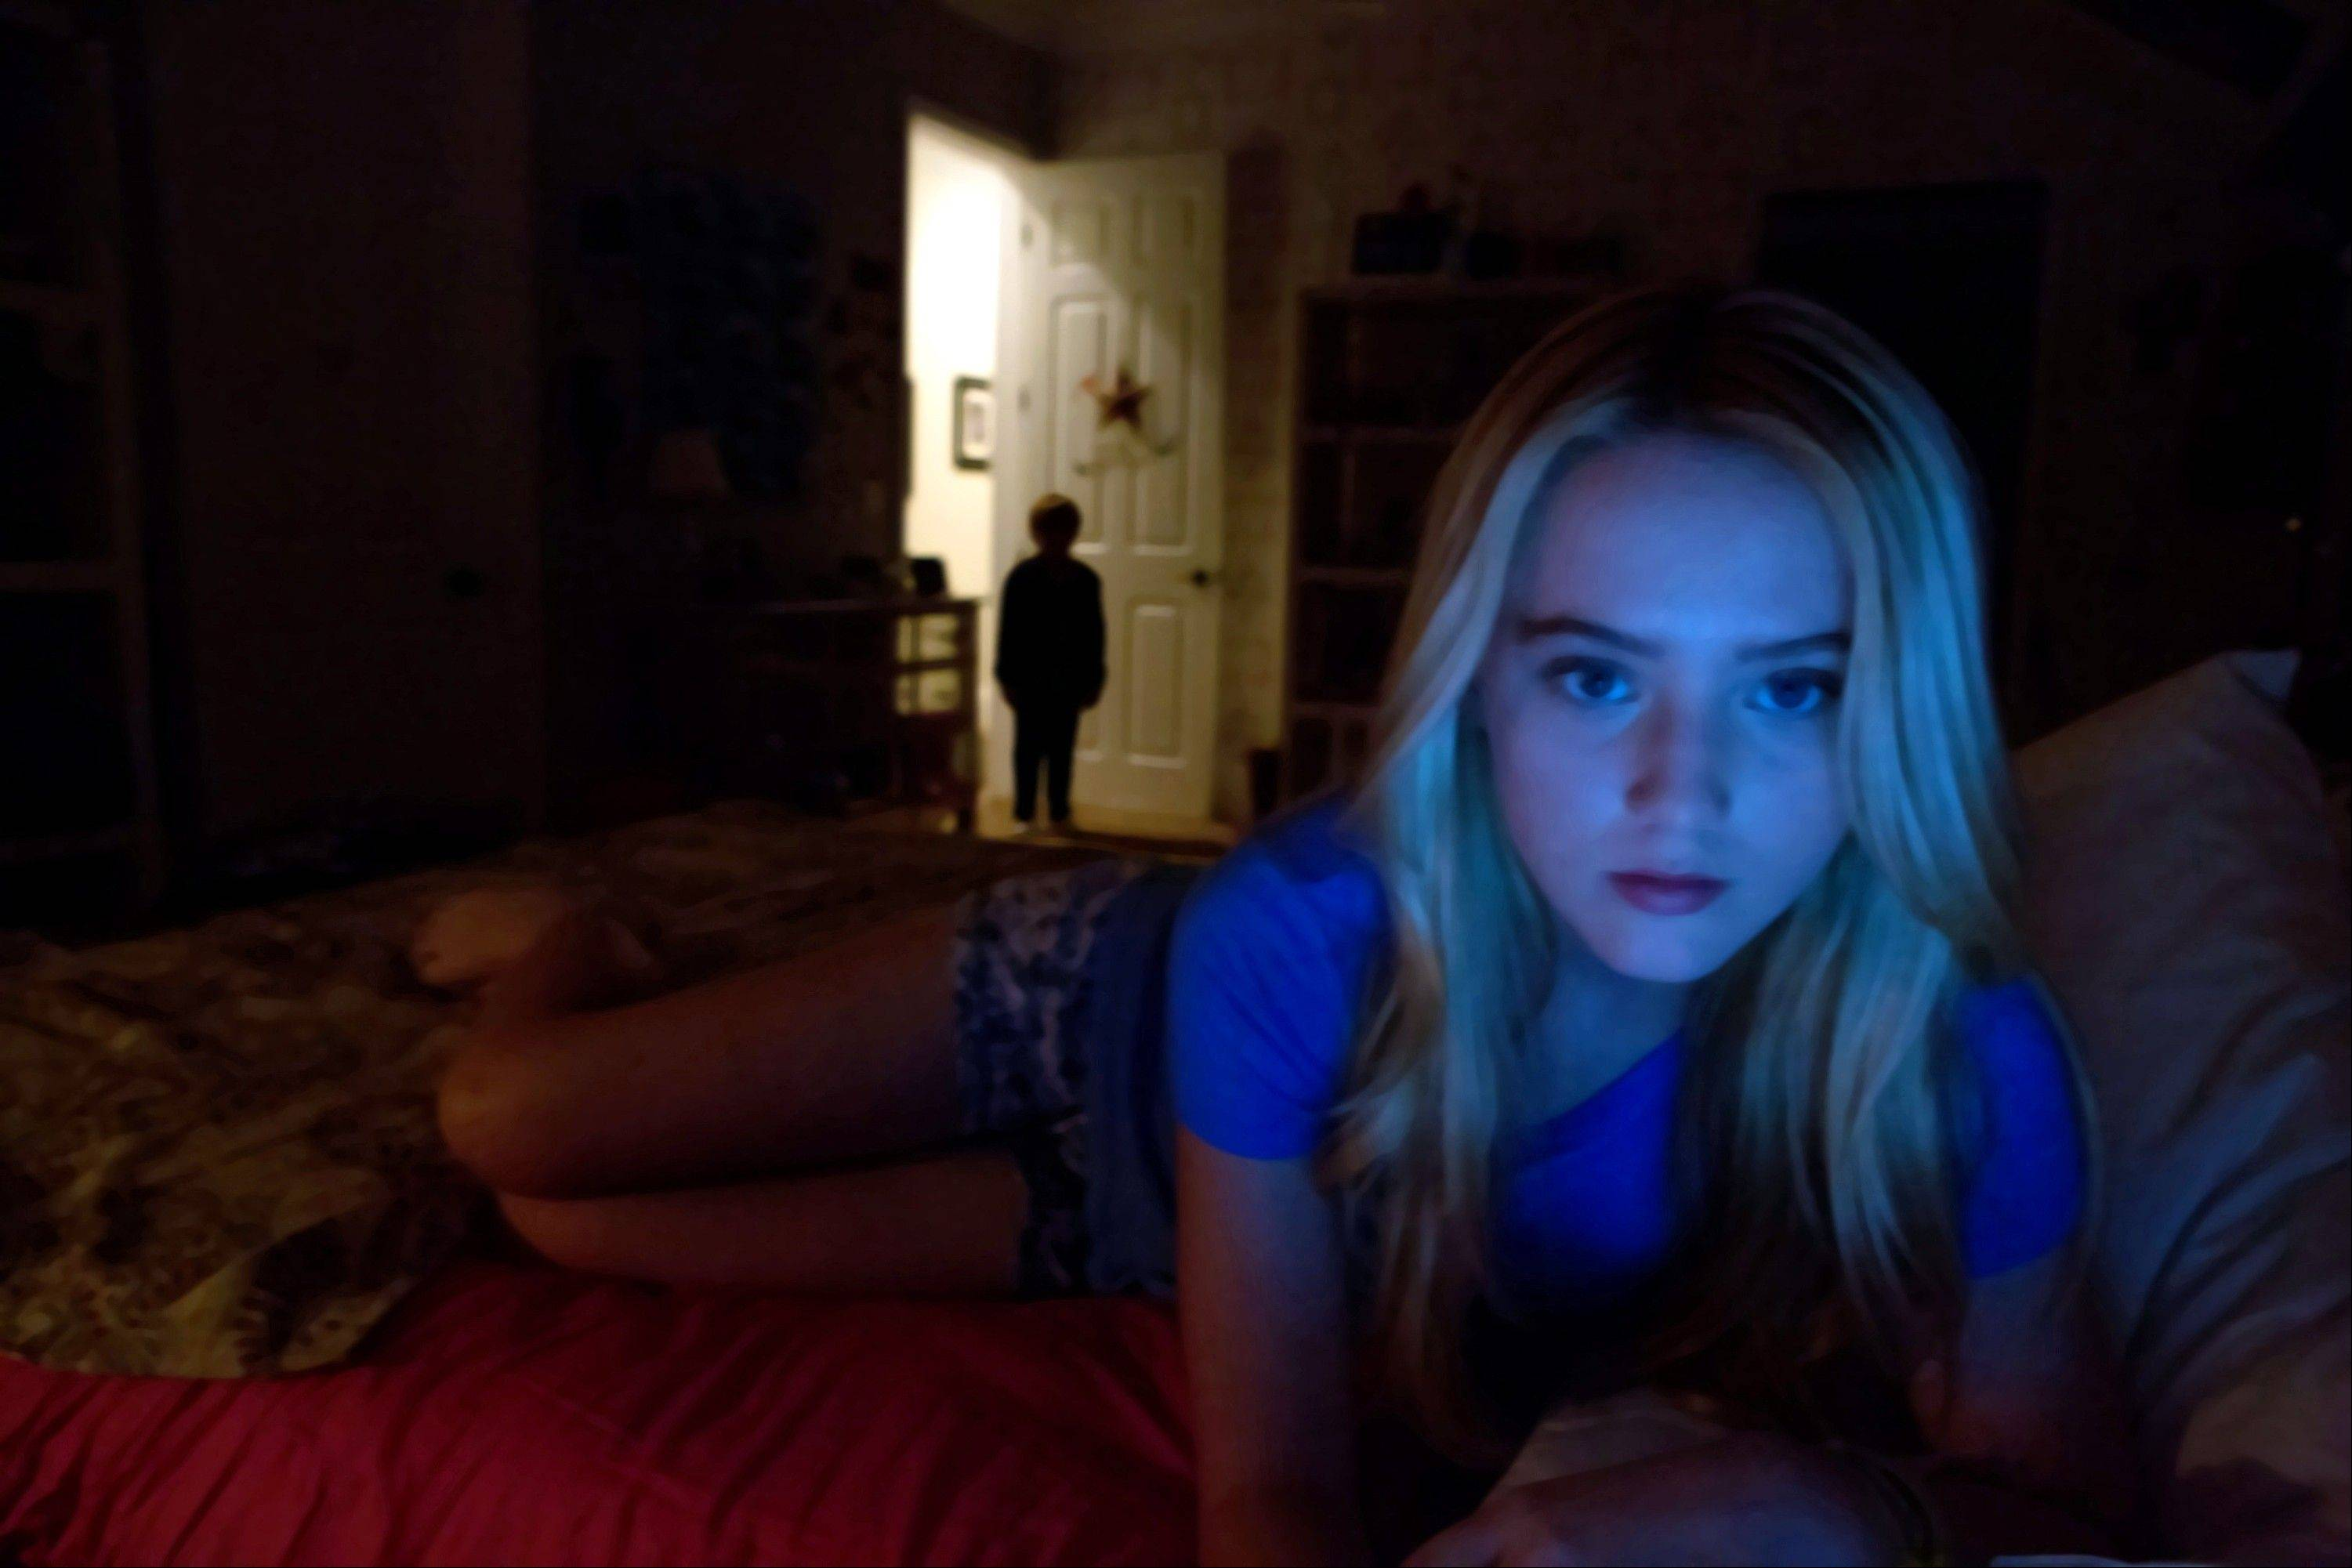 �Paranormal Activity 4� debuted in the No. 1 box-office spot, taking in $30.2 million this weekend.